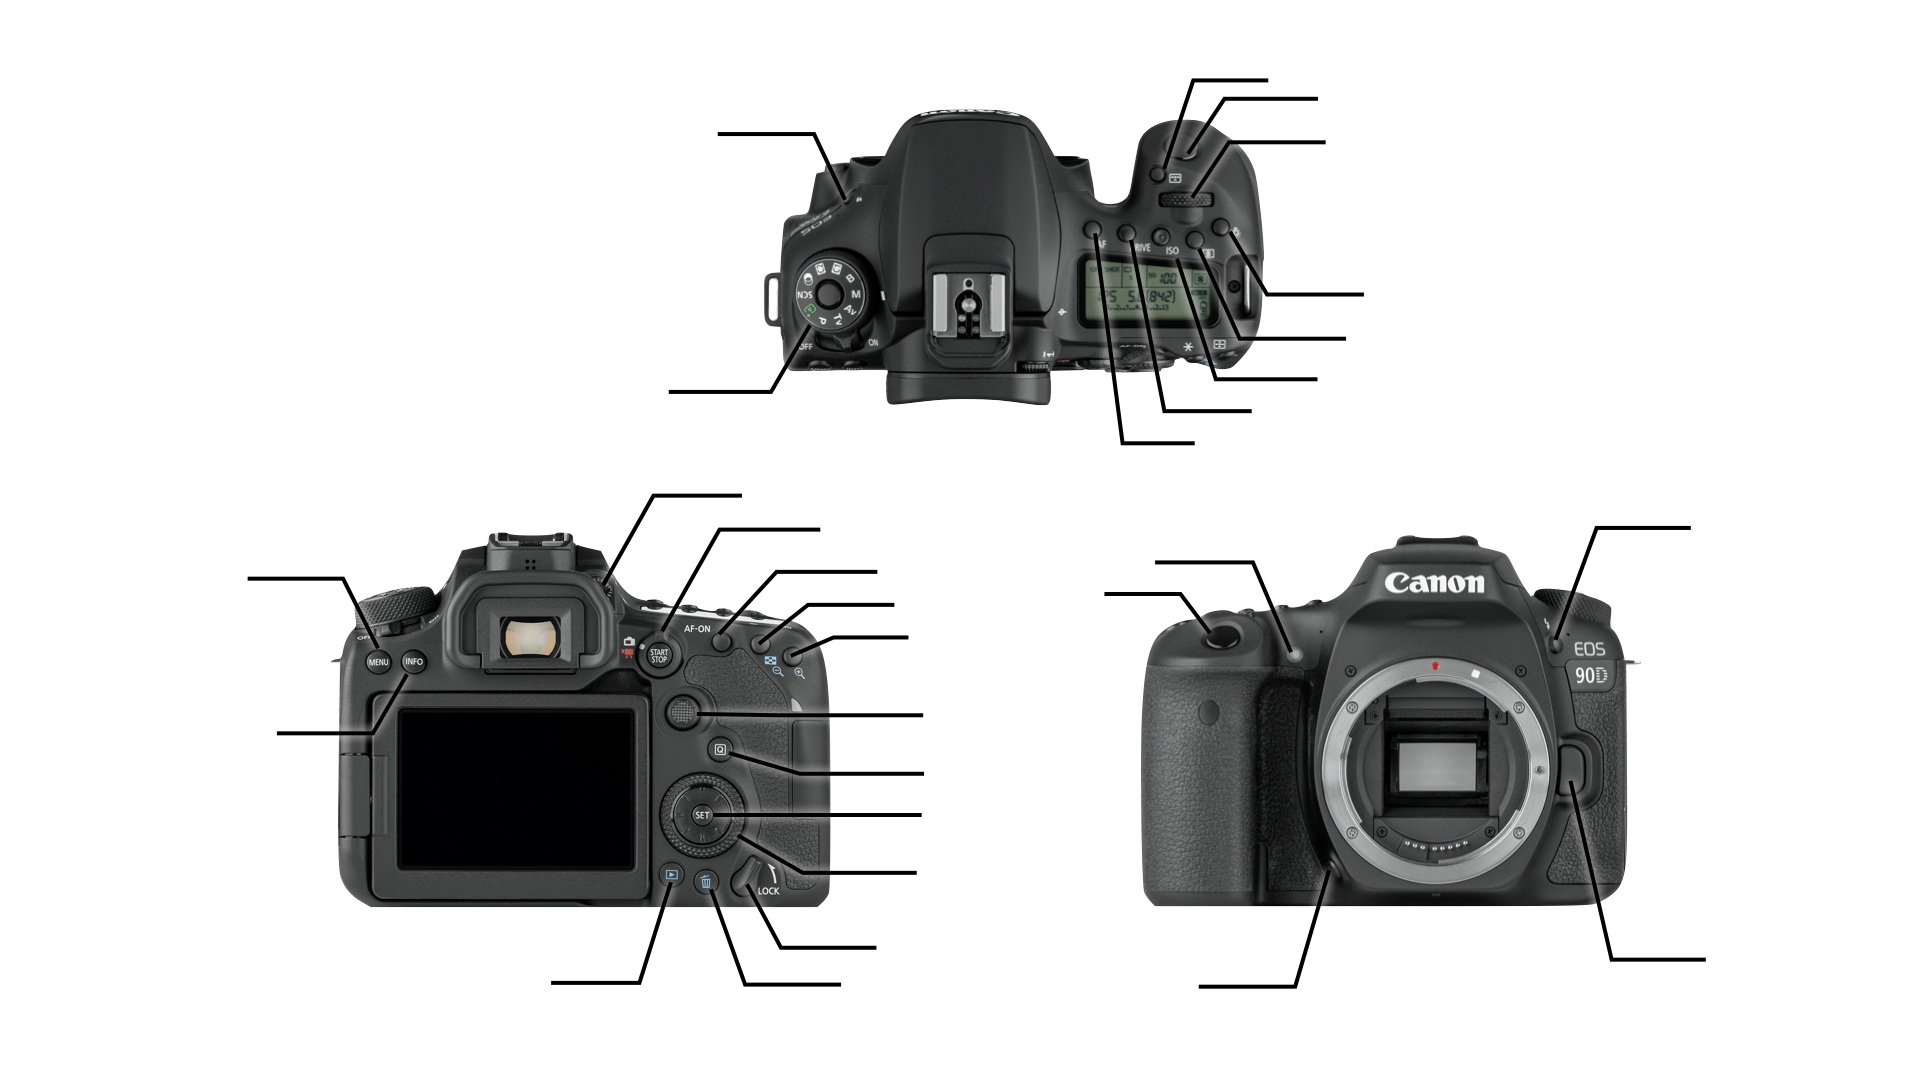 Front, back and top-down images of a camera; showing places of buttons and dials.